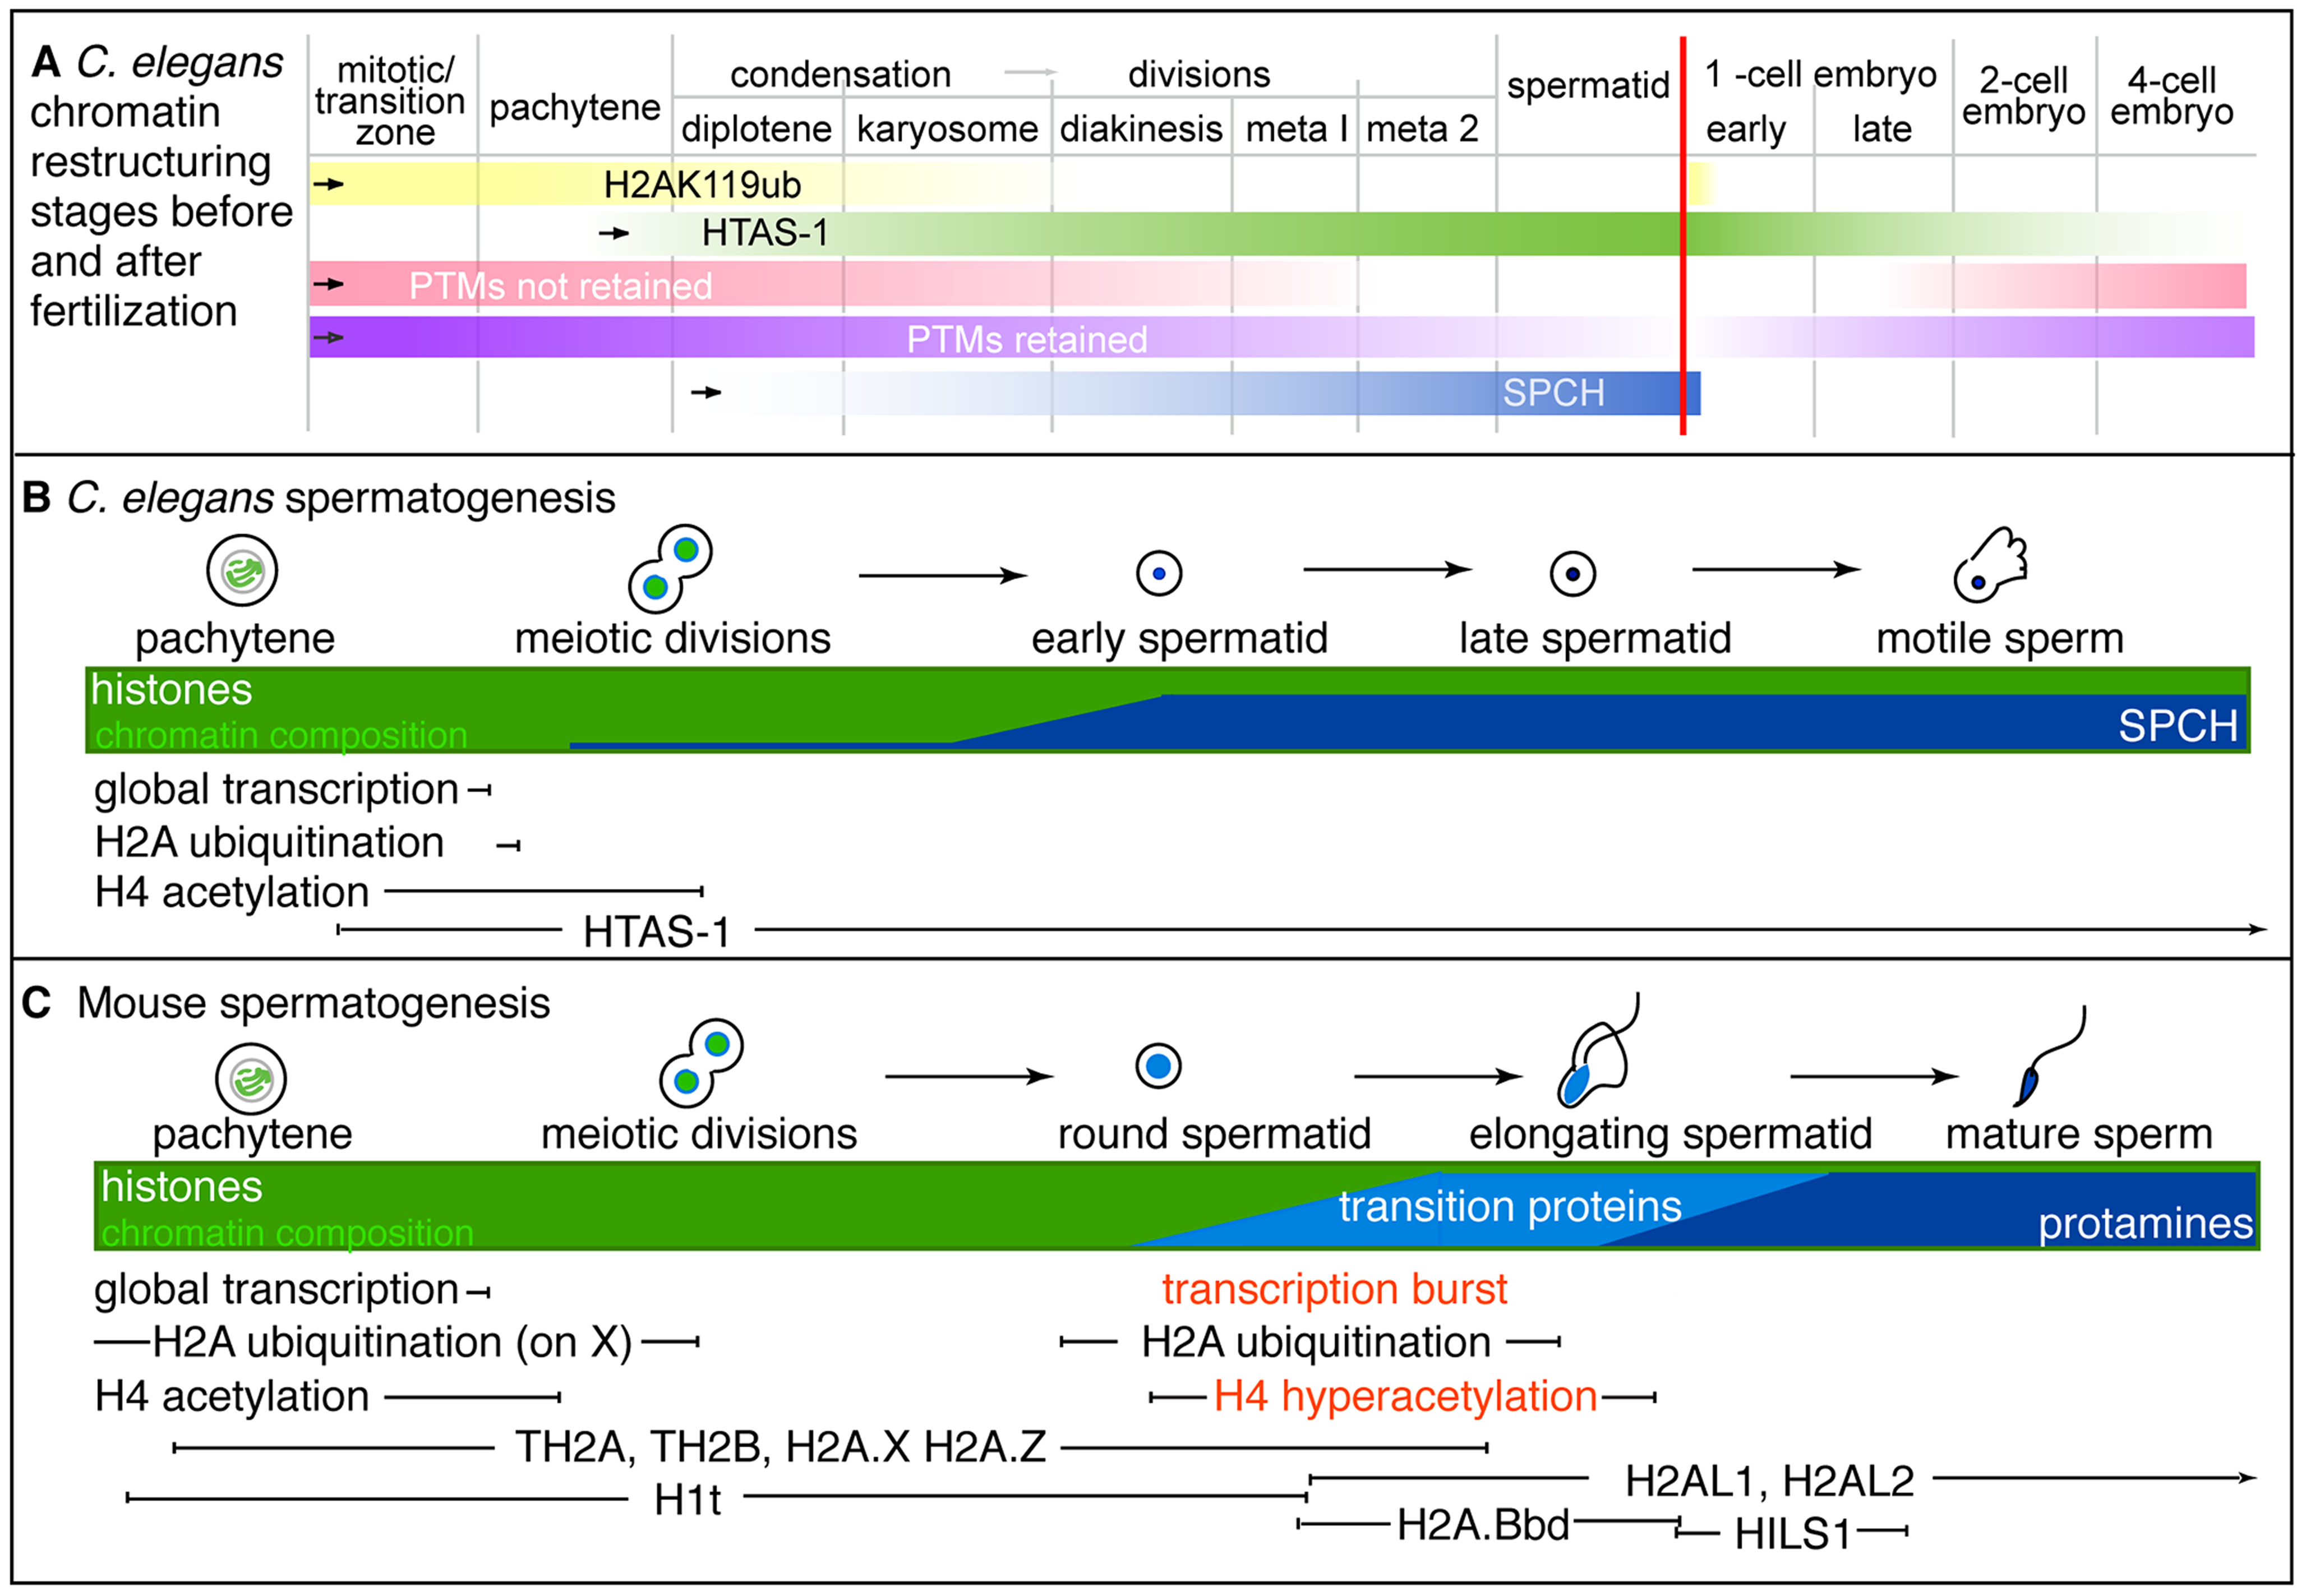 Summary of stages of chromatin remodeling events in <i>C. elegans</i> during spermatogenesis and post-fertilization.